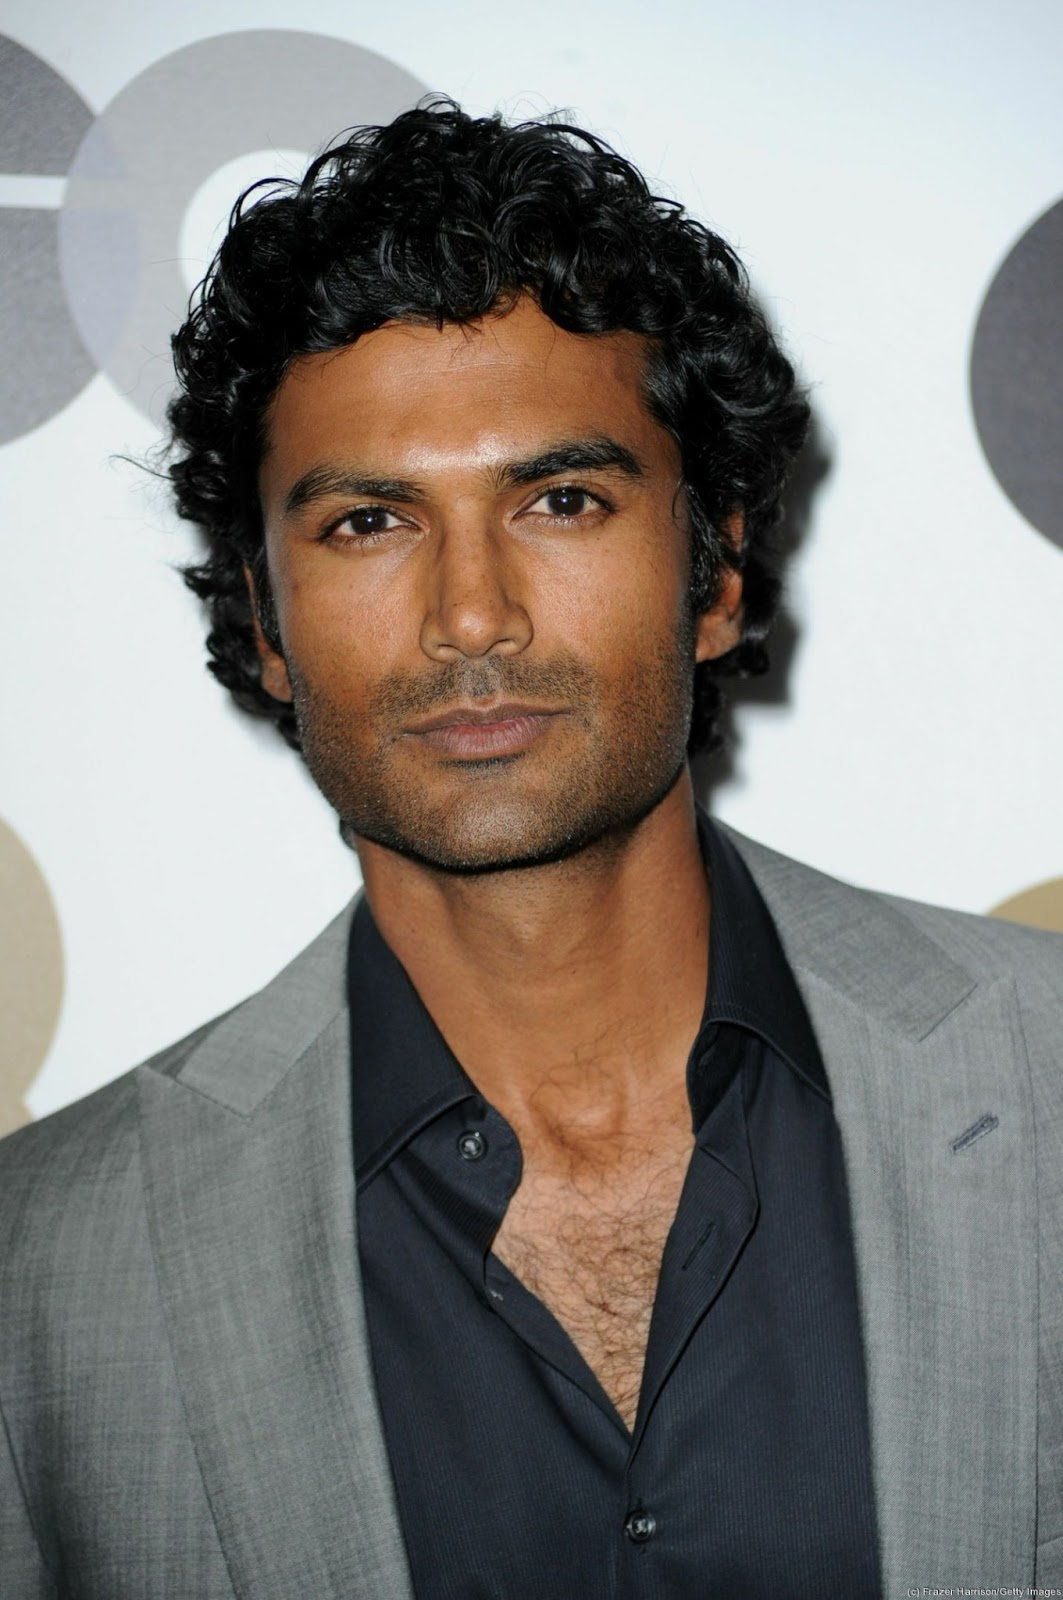 Sendhil Ramamurthy Photos | Tv Series Posters and Cast